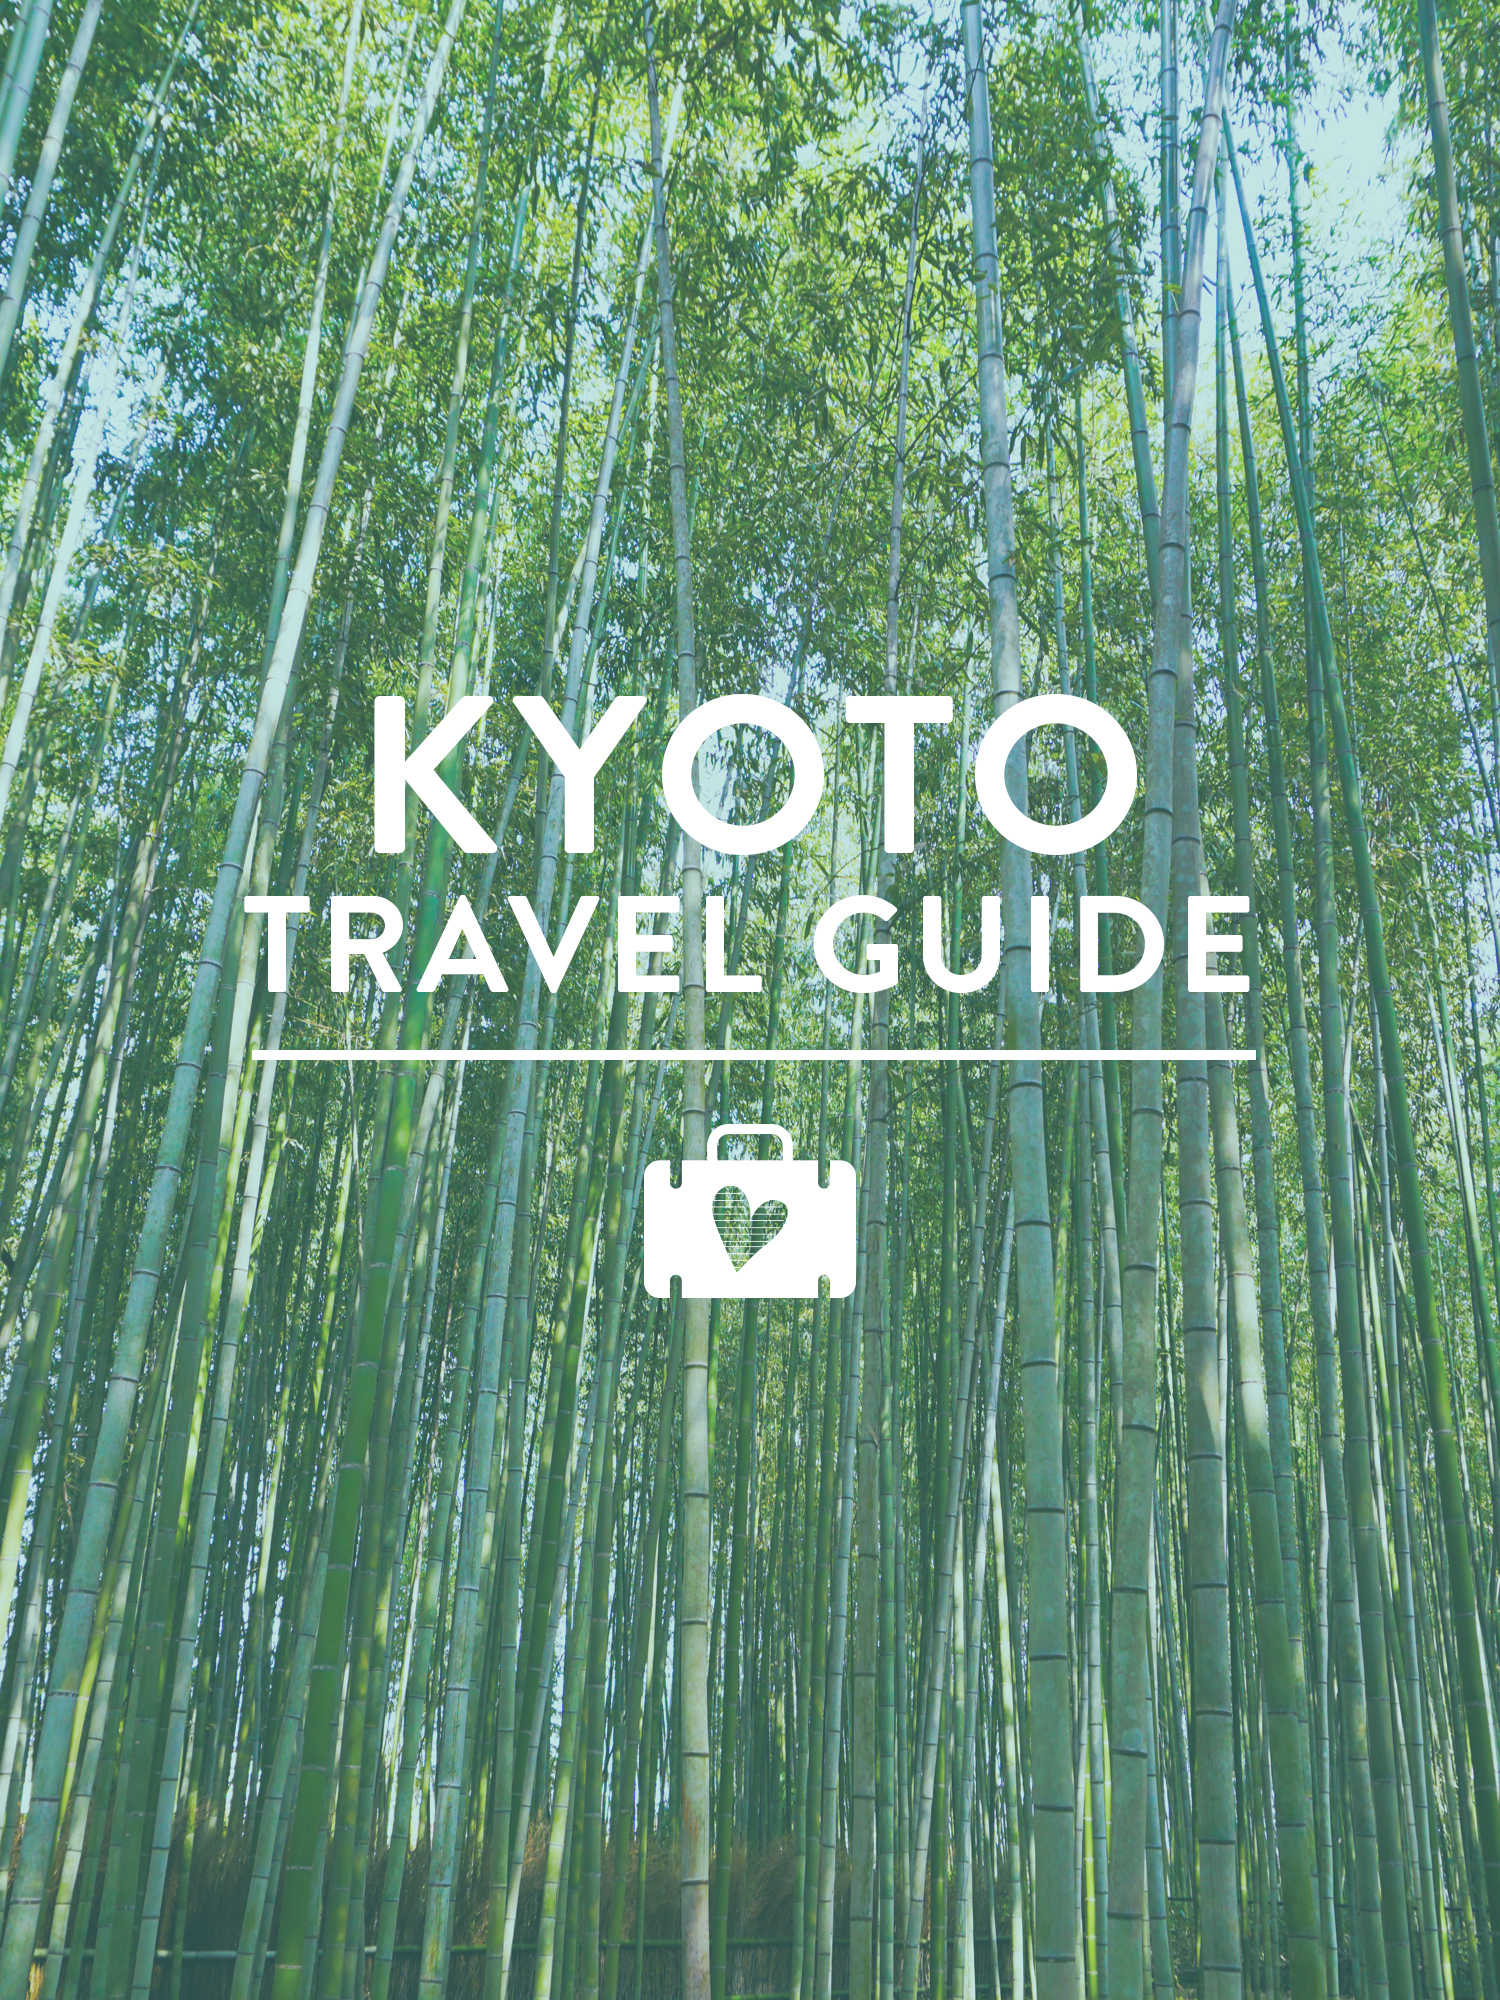 Blogger Sarah Hearts shares all the must see places in Kyoto, Japan in this awesome travel guide!